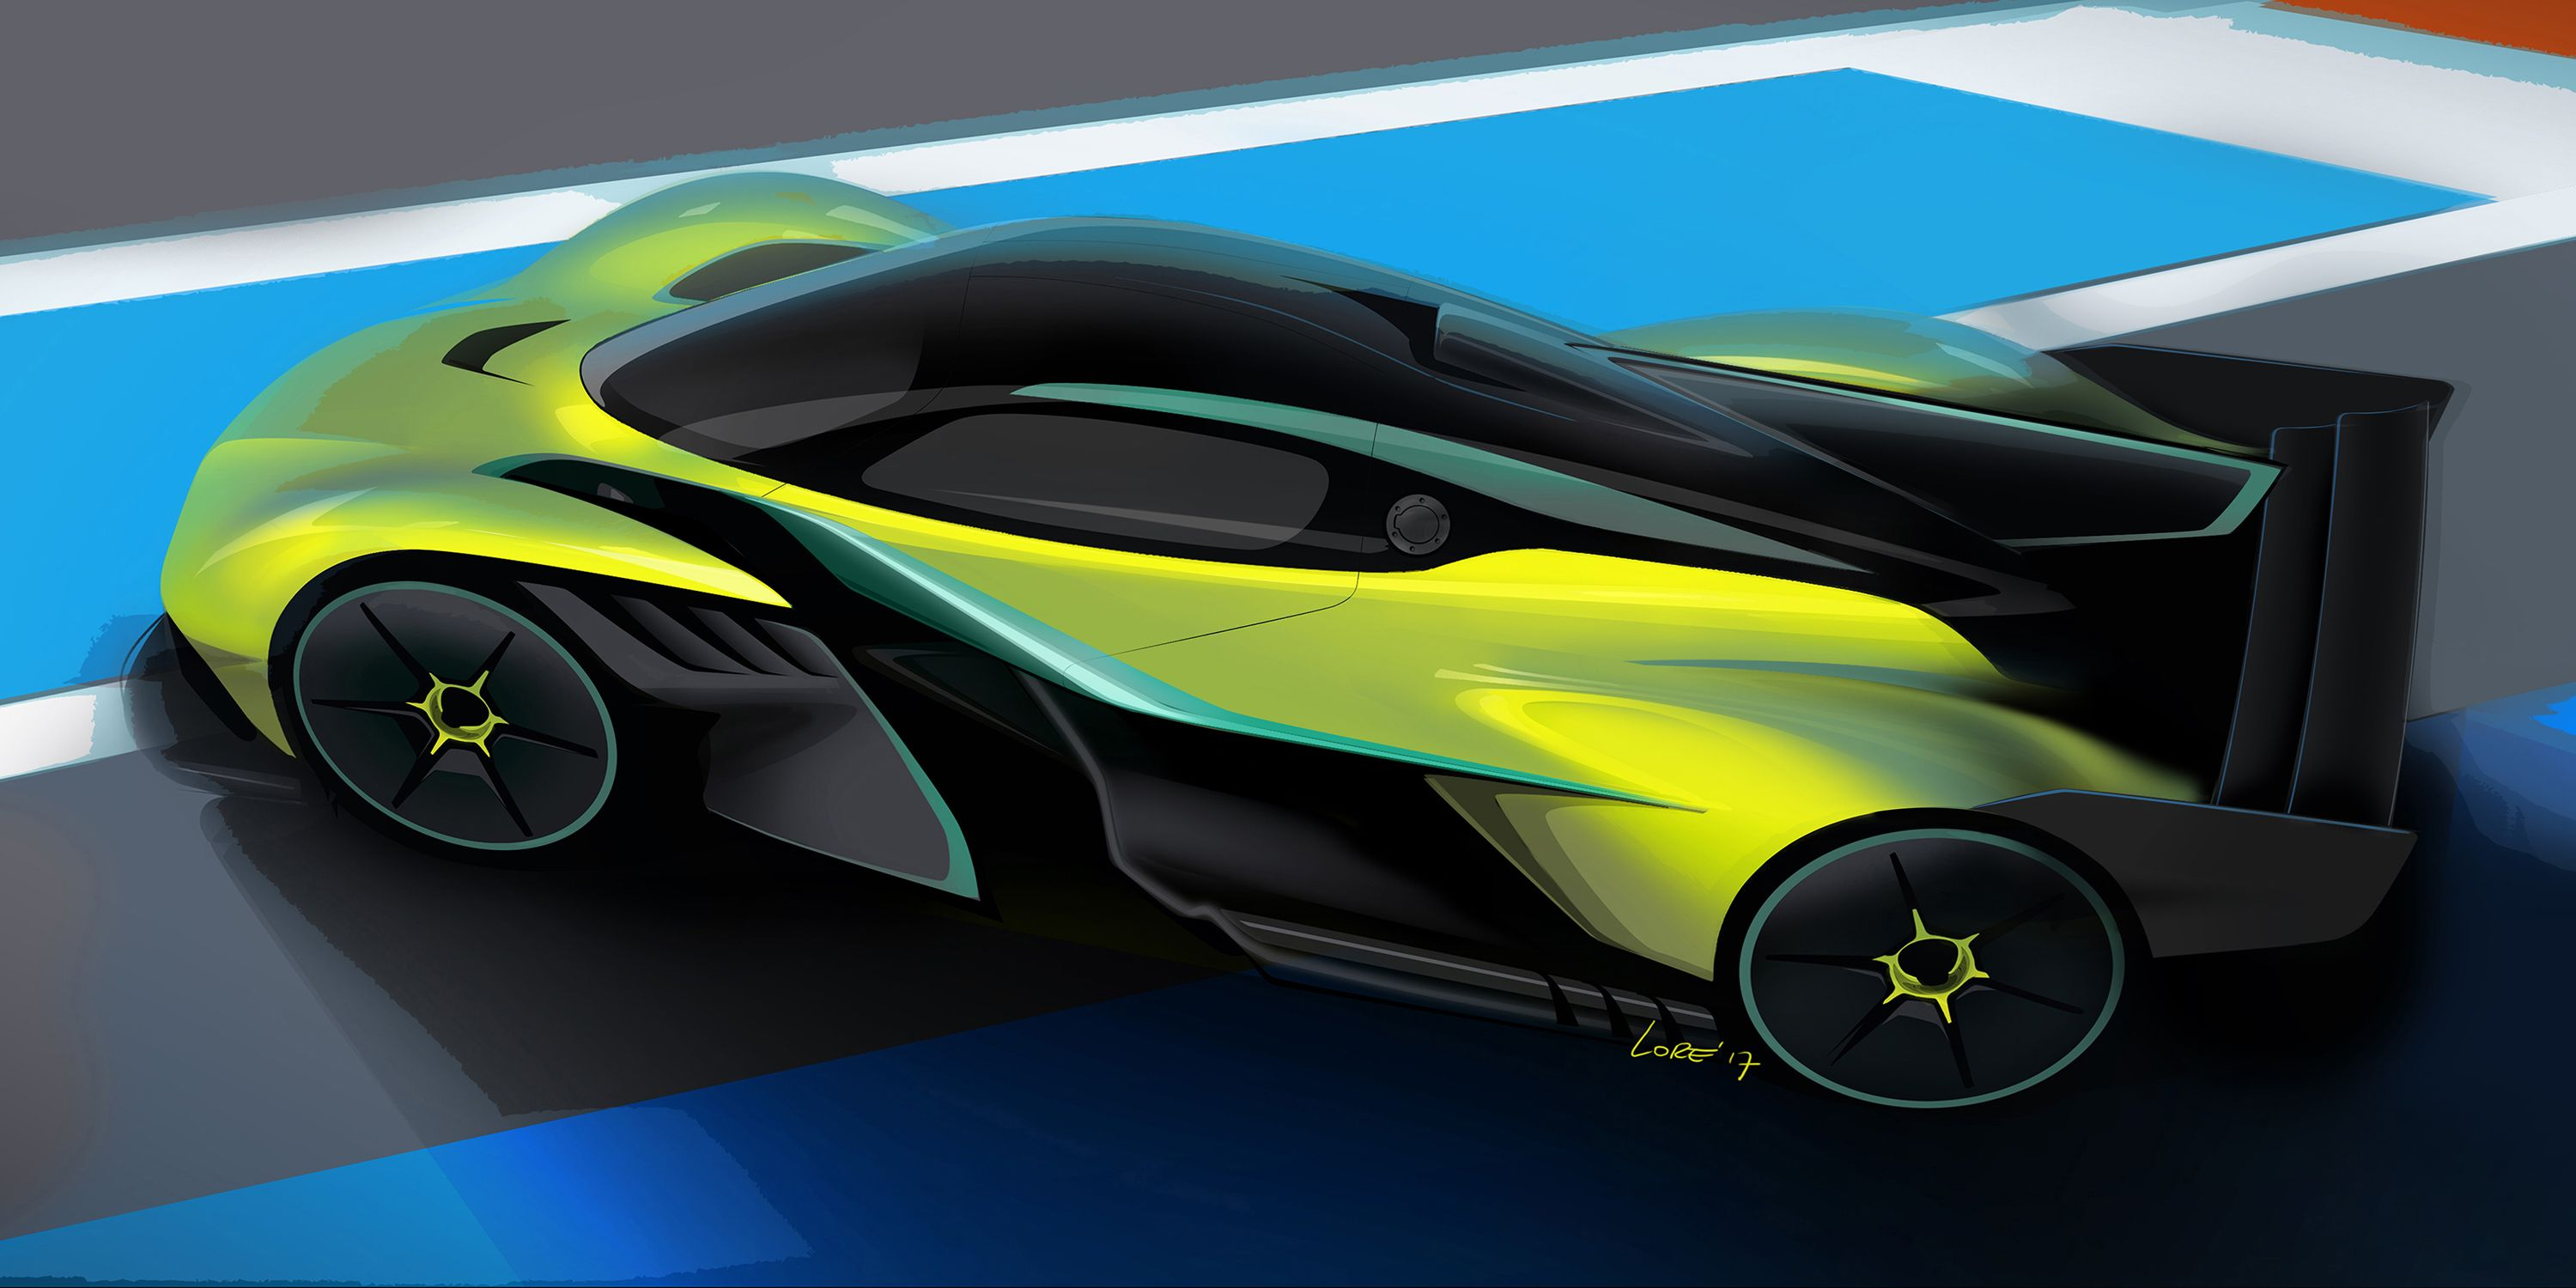 aston martin says the 250-mph valkyrie amr pro will be as fast as a